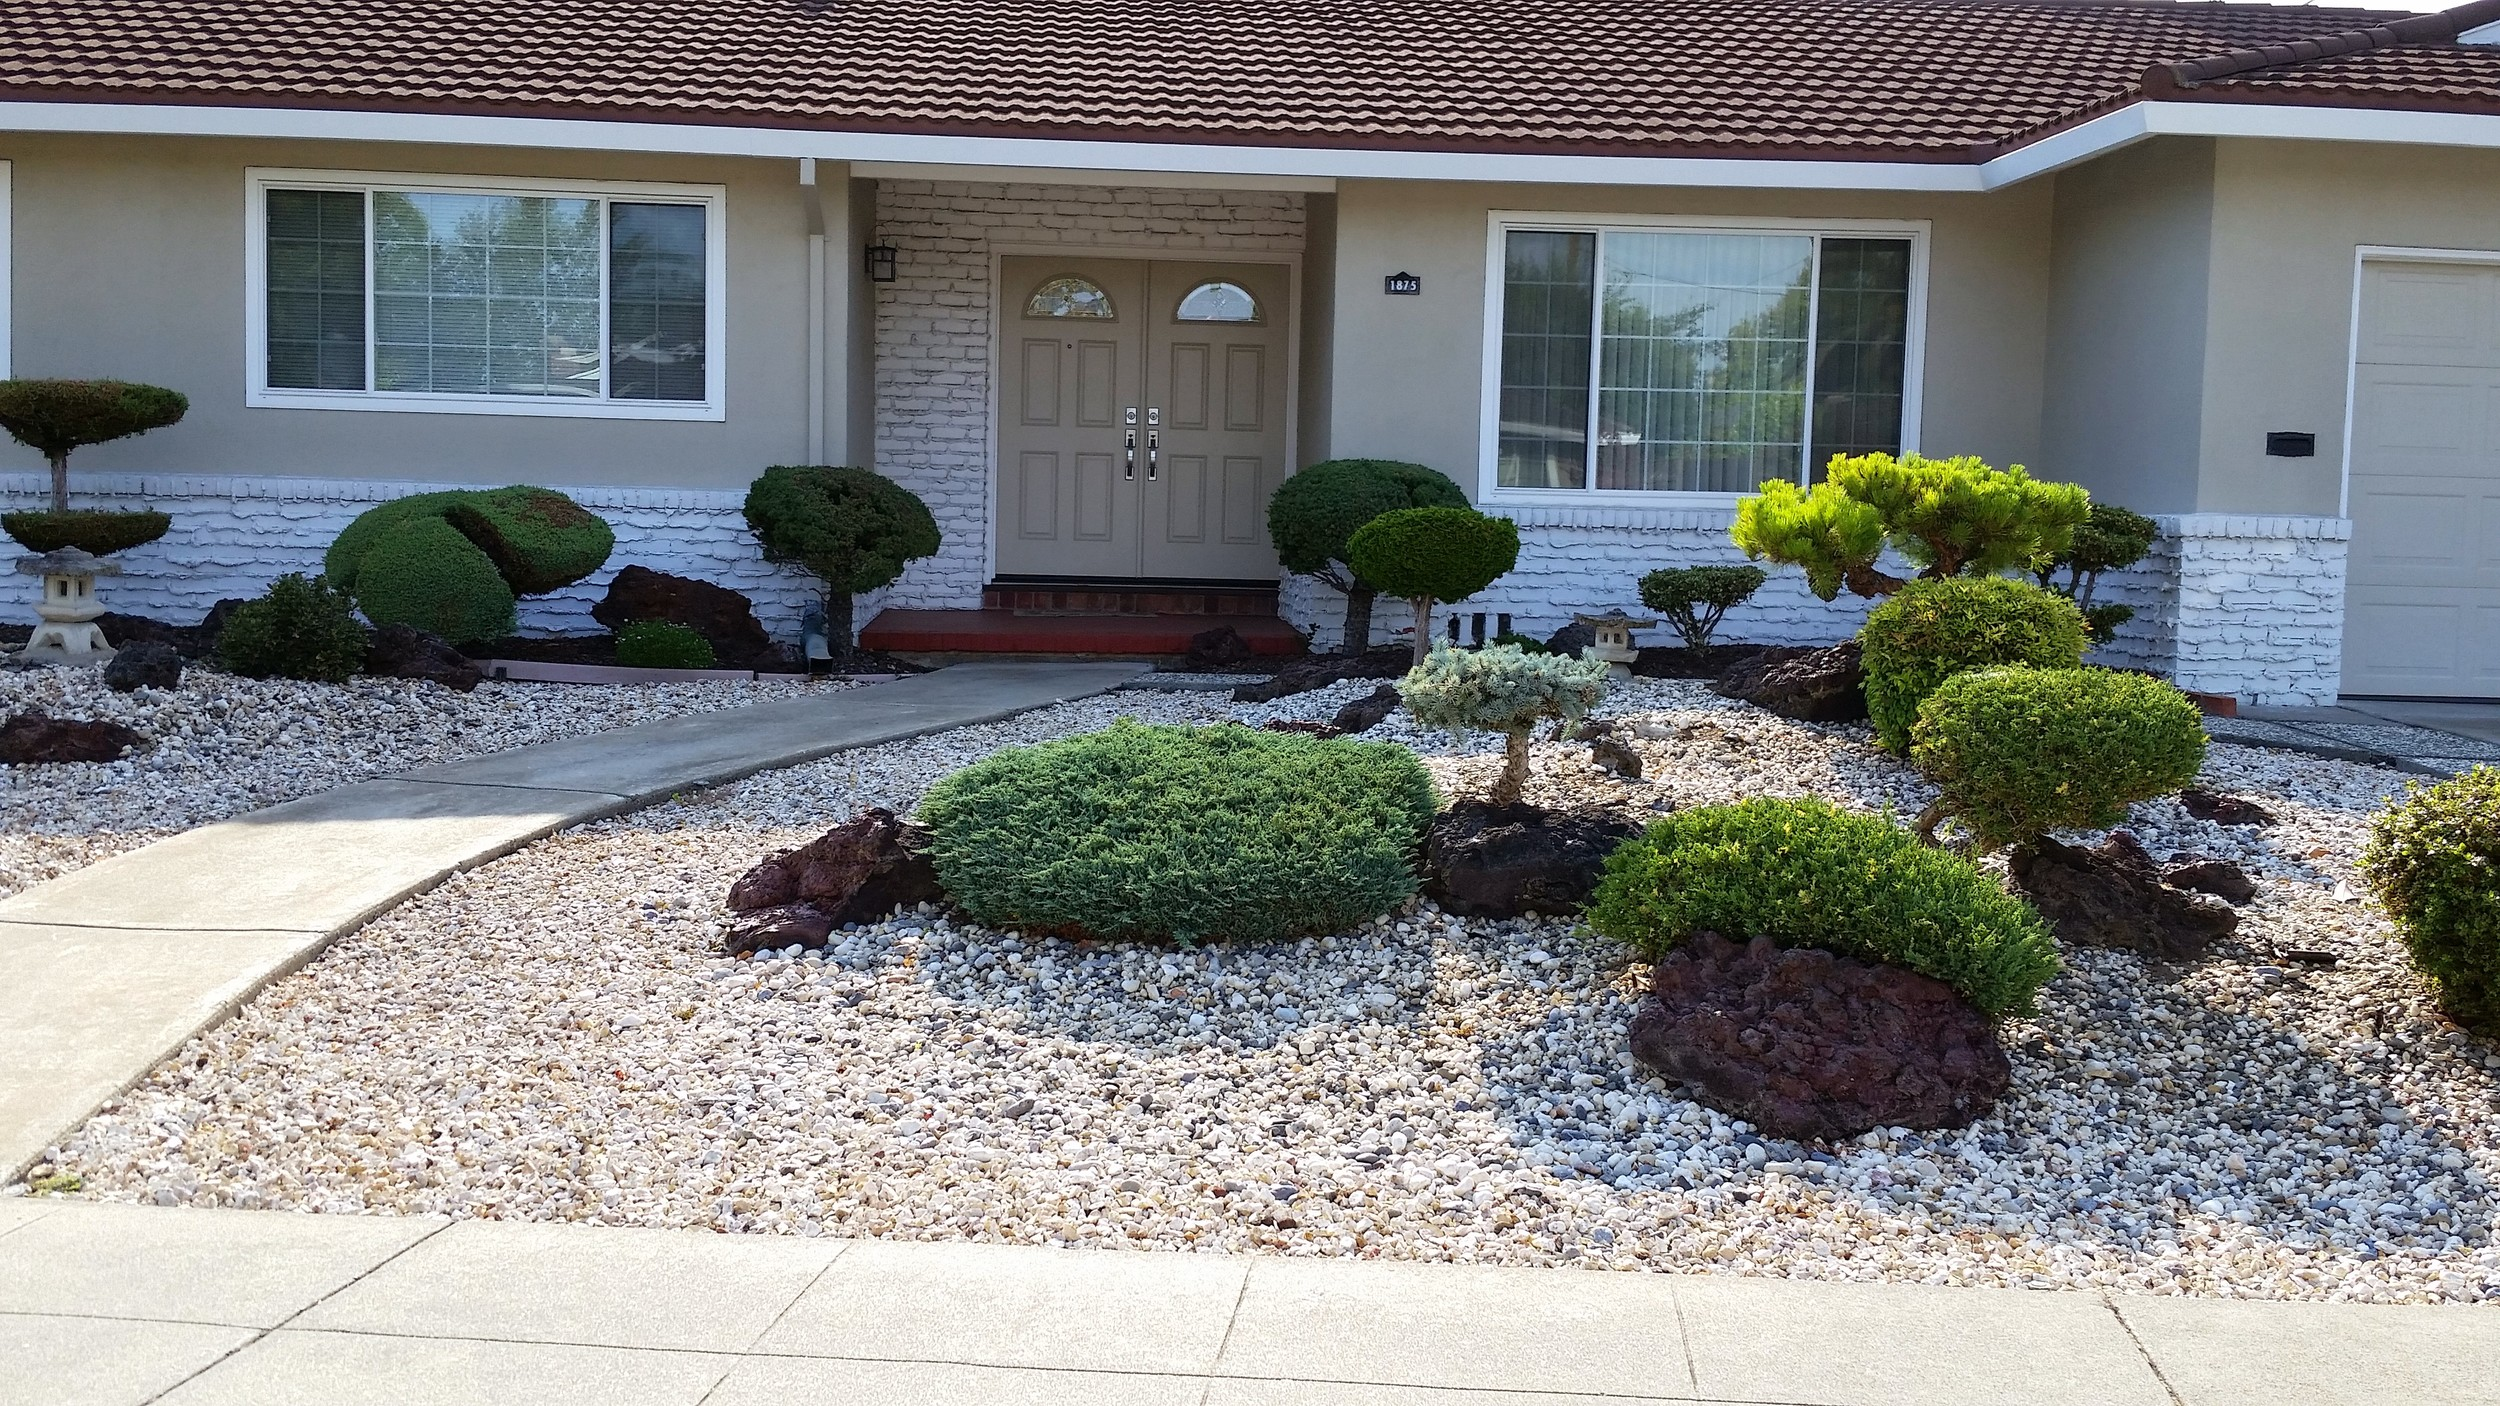 Vintage landscape with decorative rock and highly stylized shrubs.